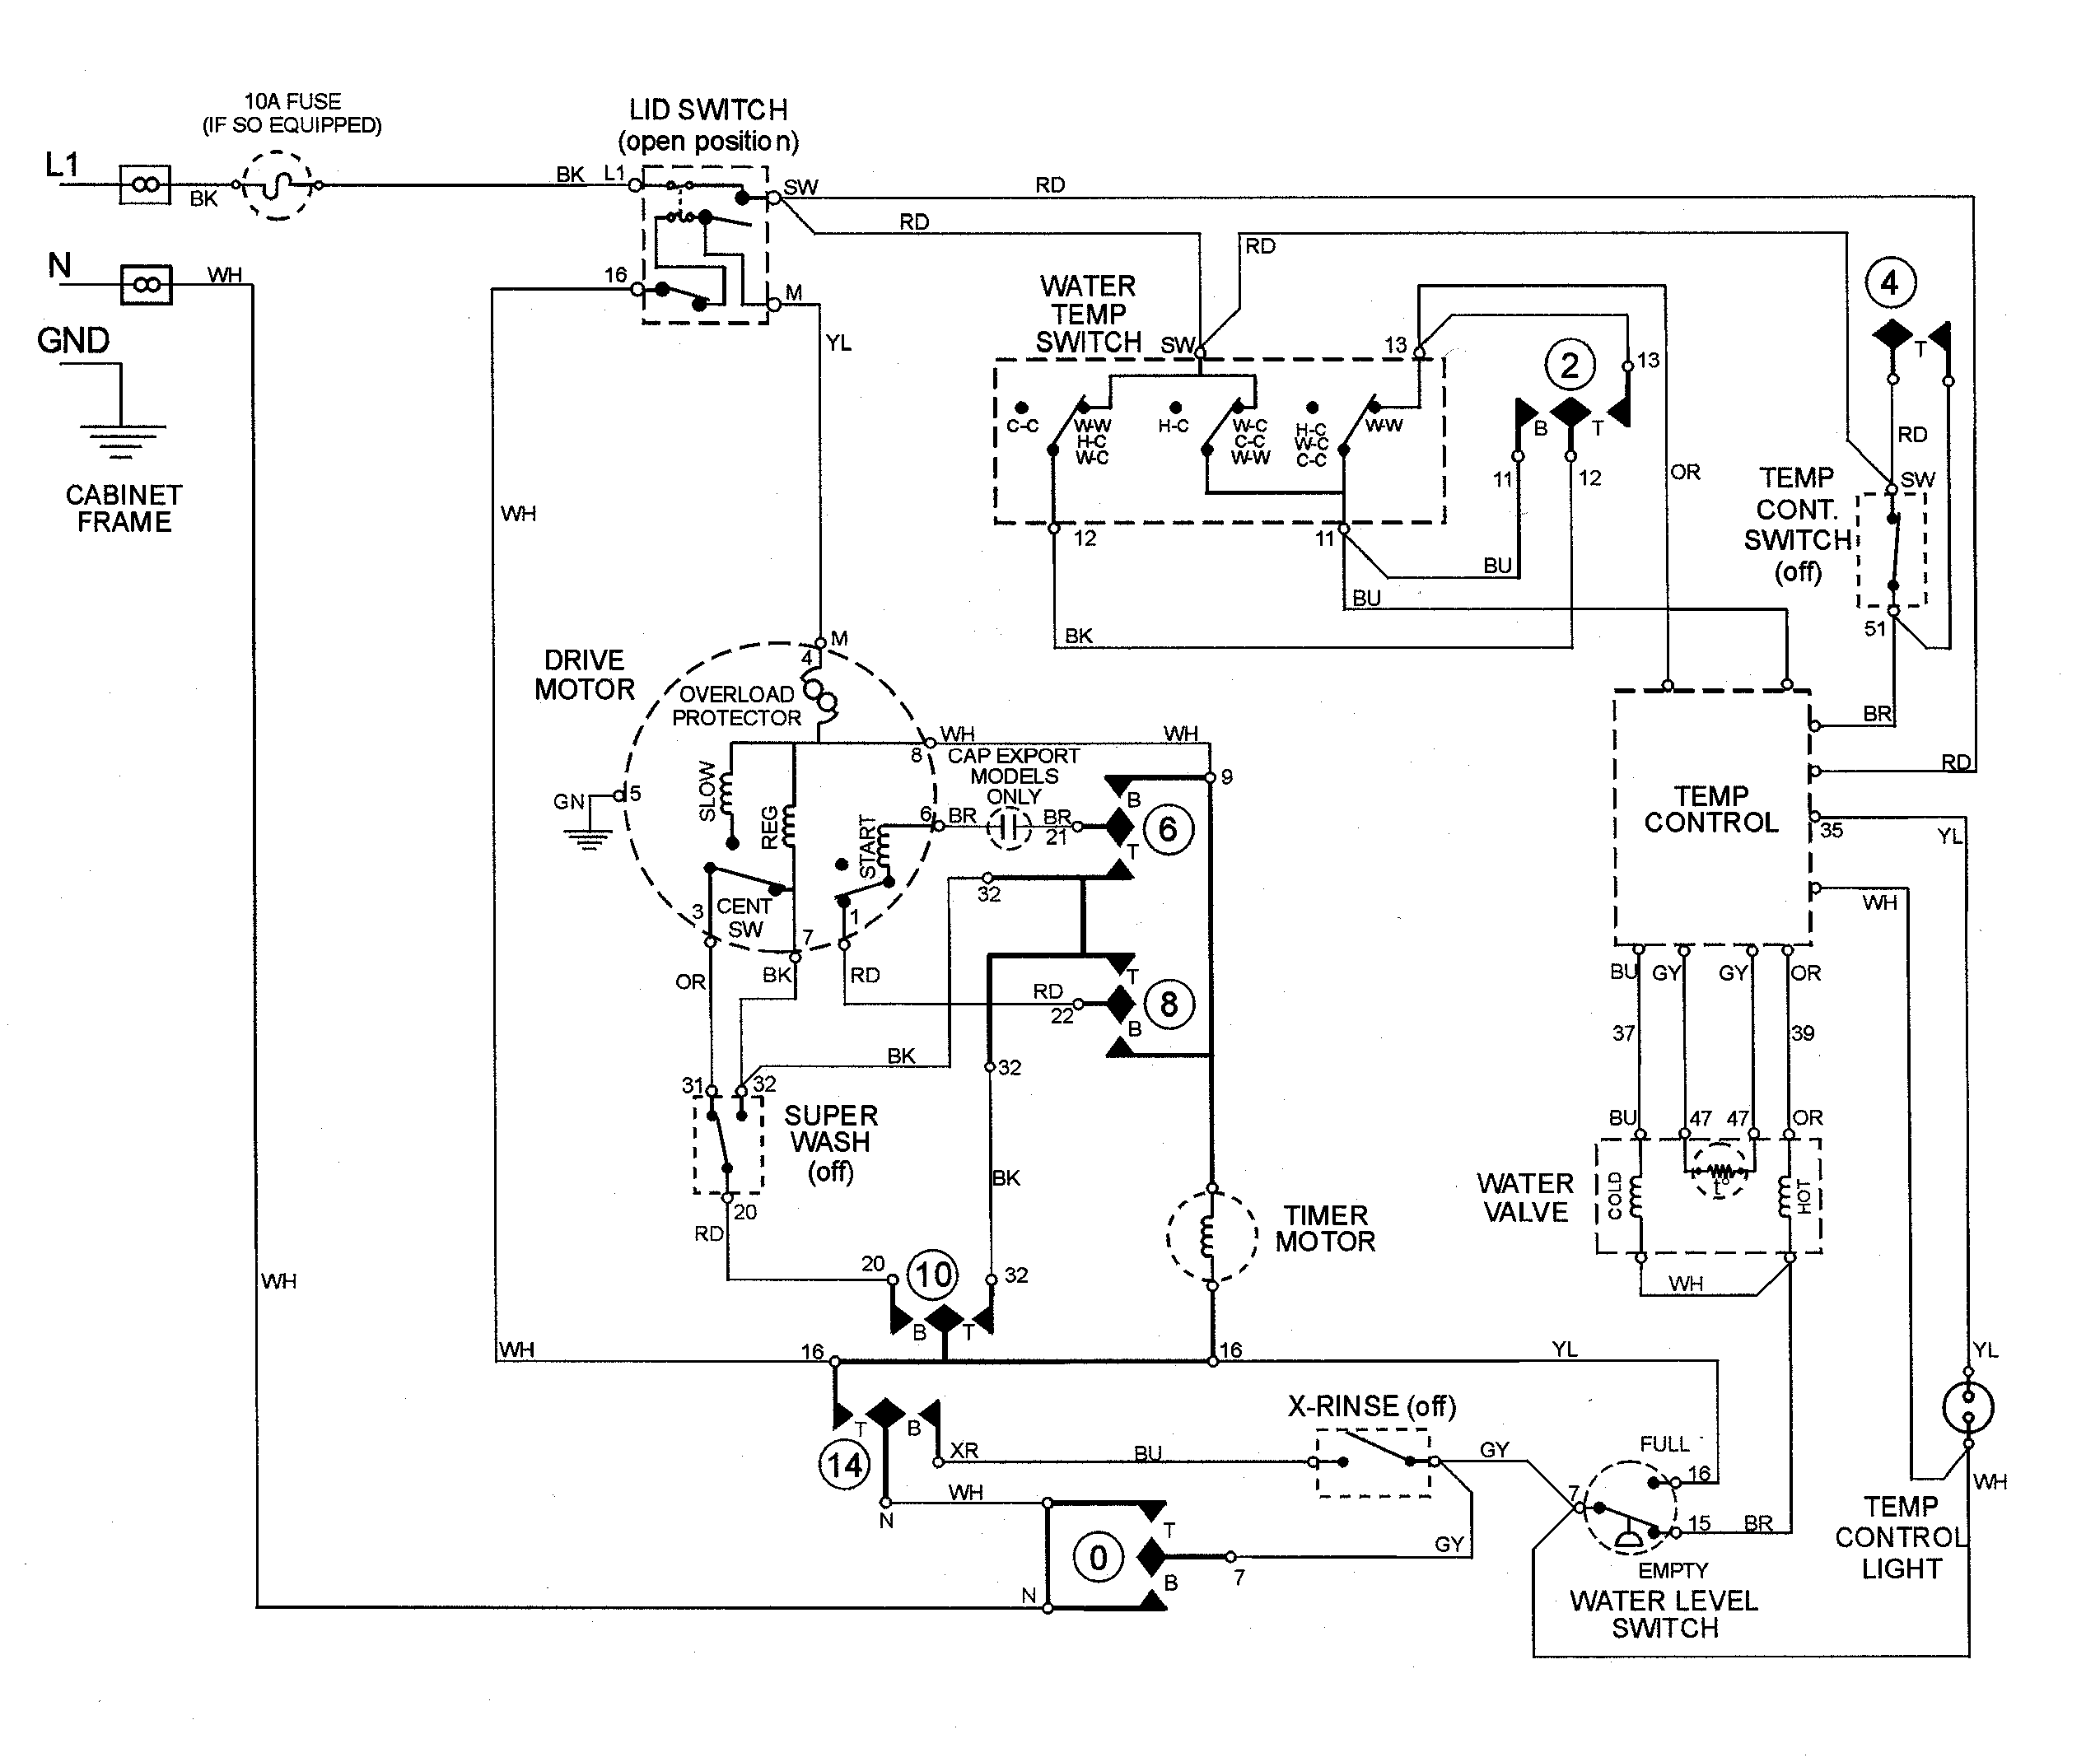 wiring diagram of washing machine motor , http://bookingritzcarlton.info/ wiring-diagram-of-wa... | washing machine motor, electrical diagram,  electric dryers  pinterest